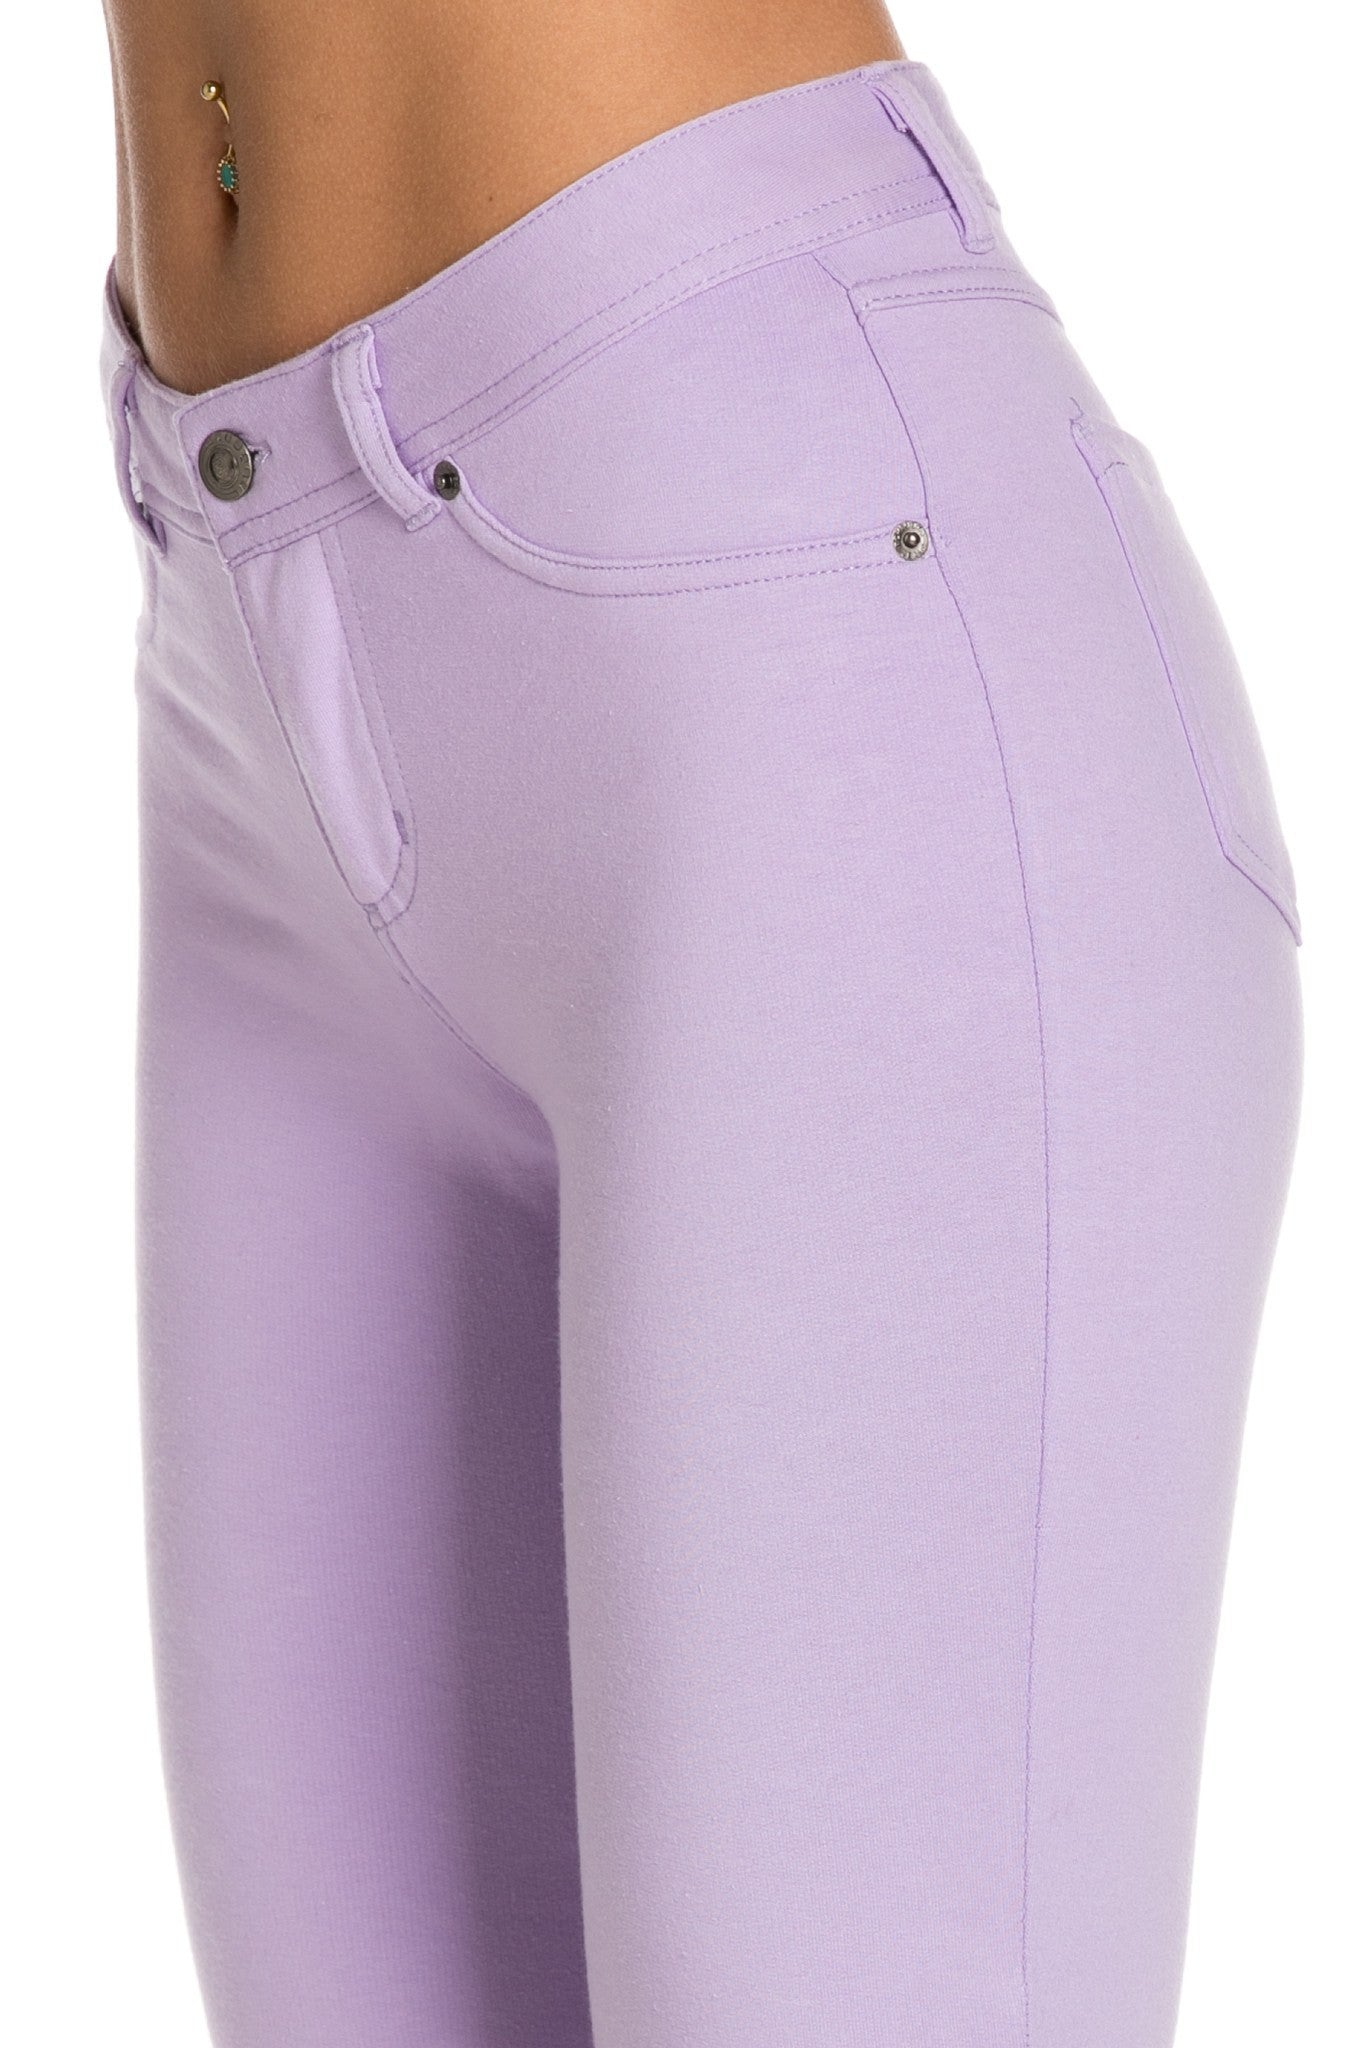 Stretch Skinny Knit Jegging Pants (Lilac) - Poplooks